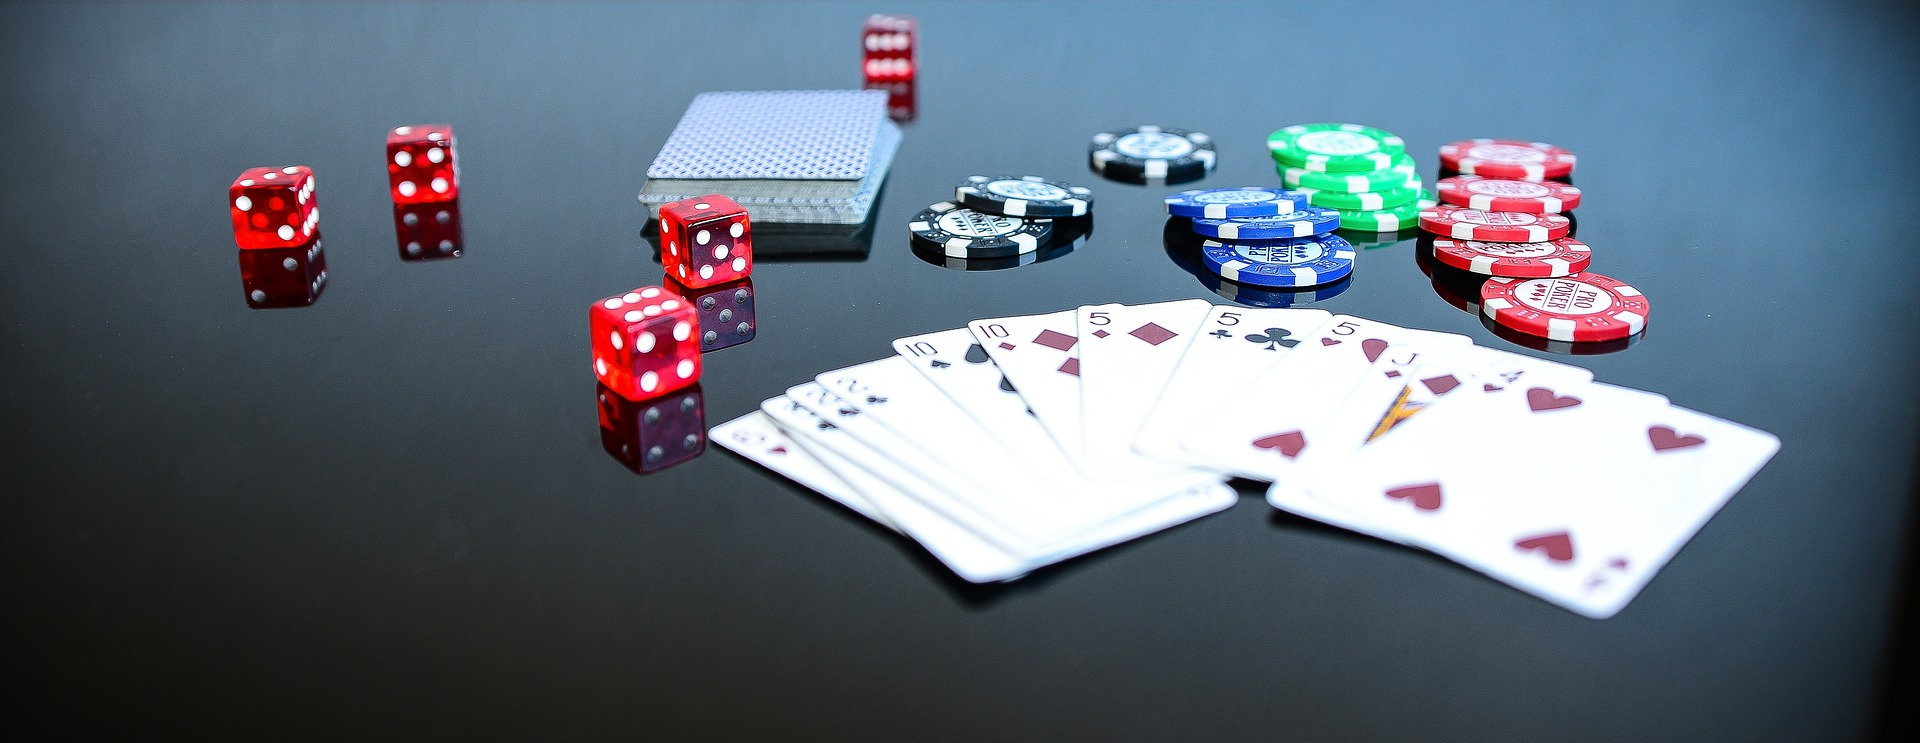 PA Online Gambling Licensees Will Not Have To Be PA Casinos, Senator States